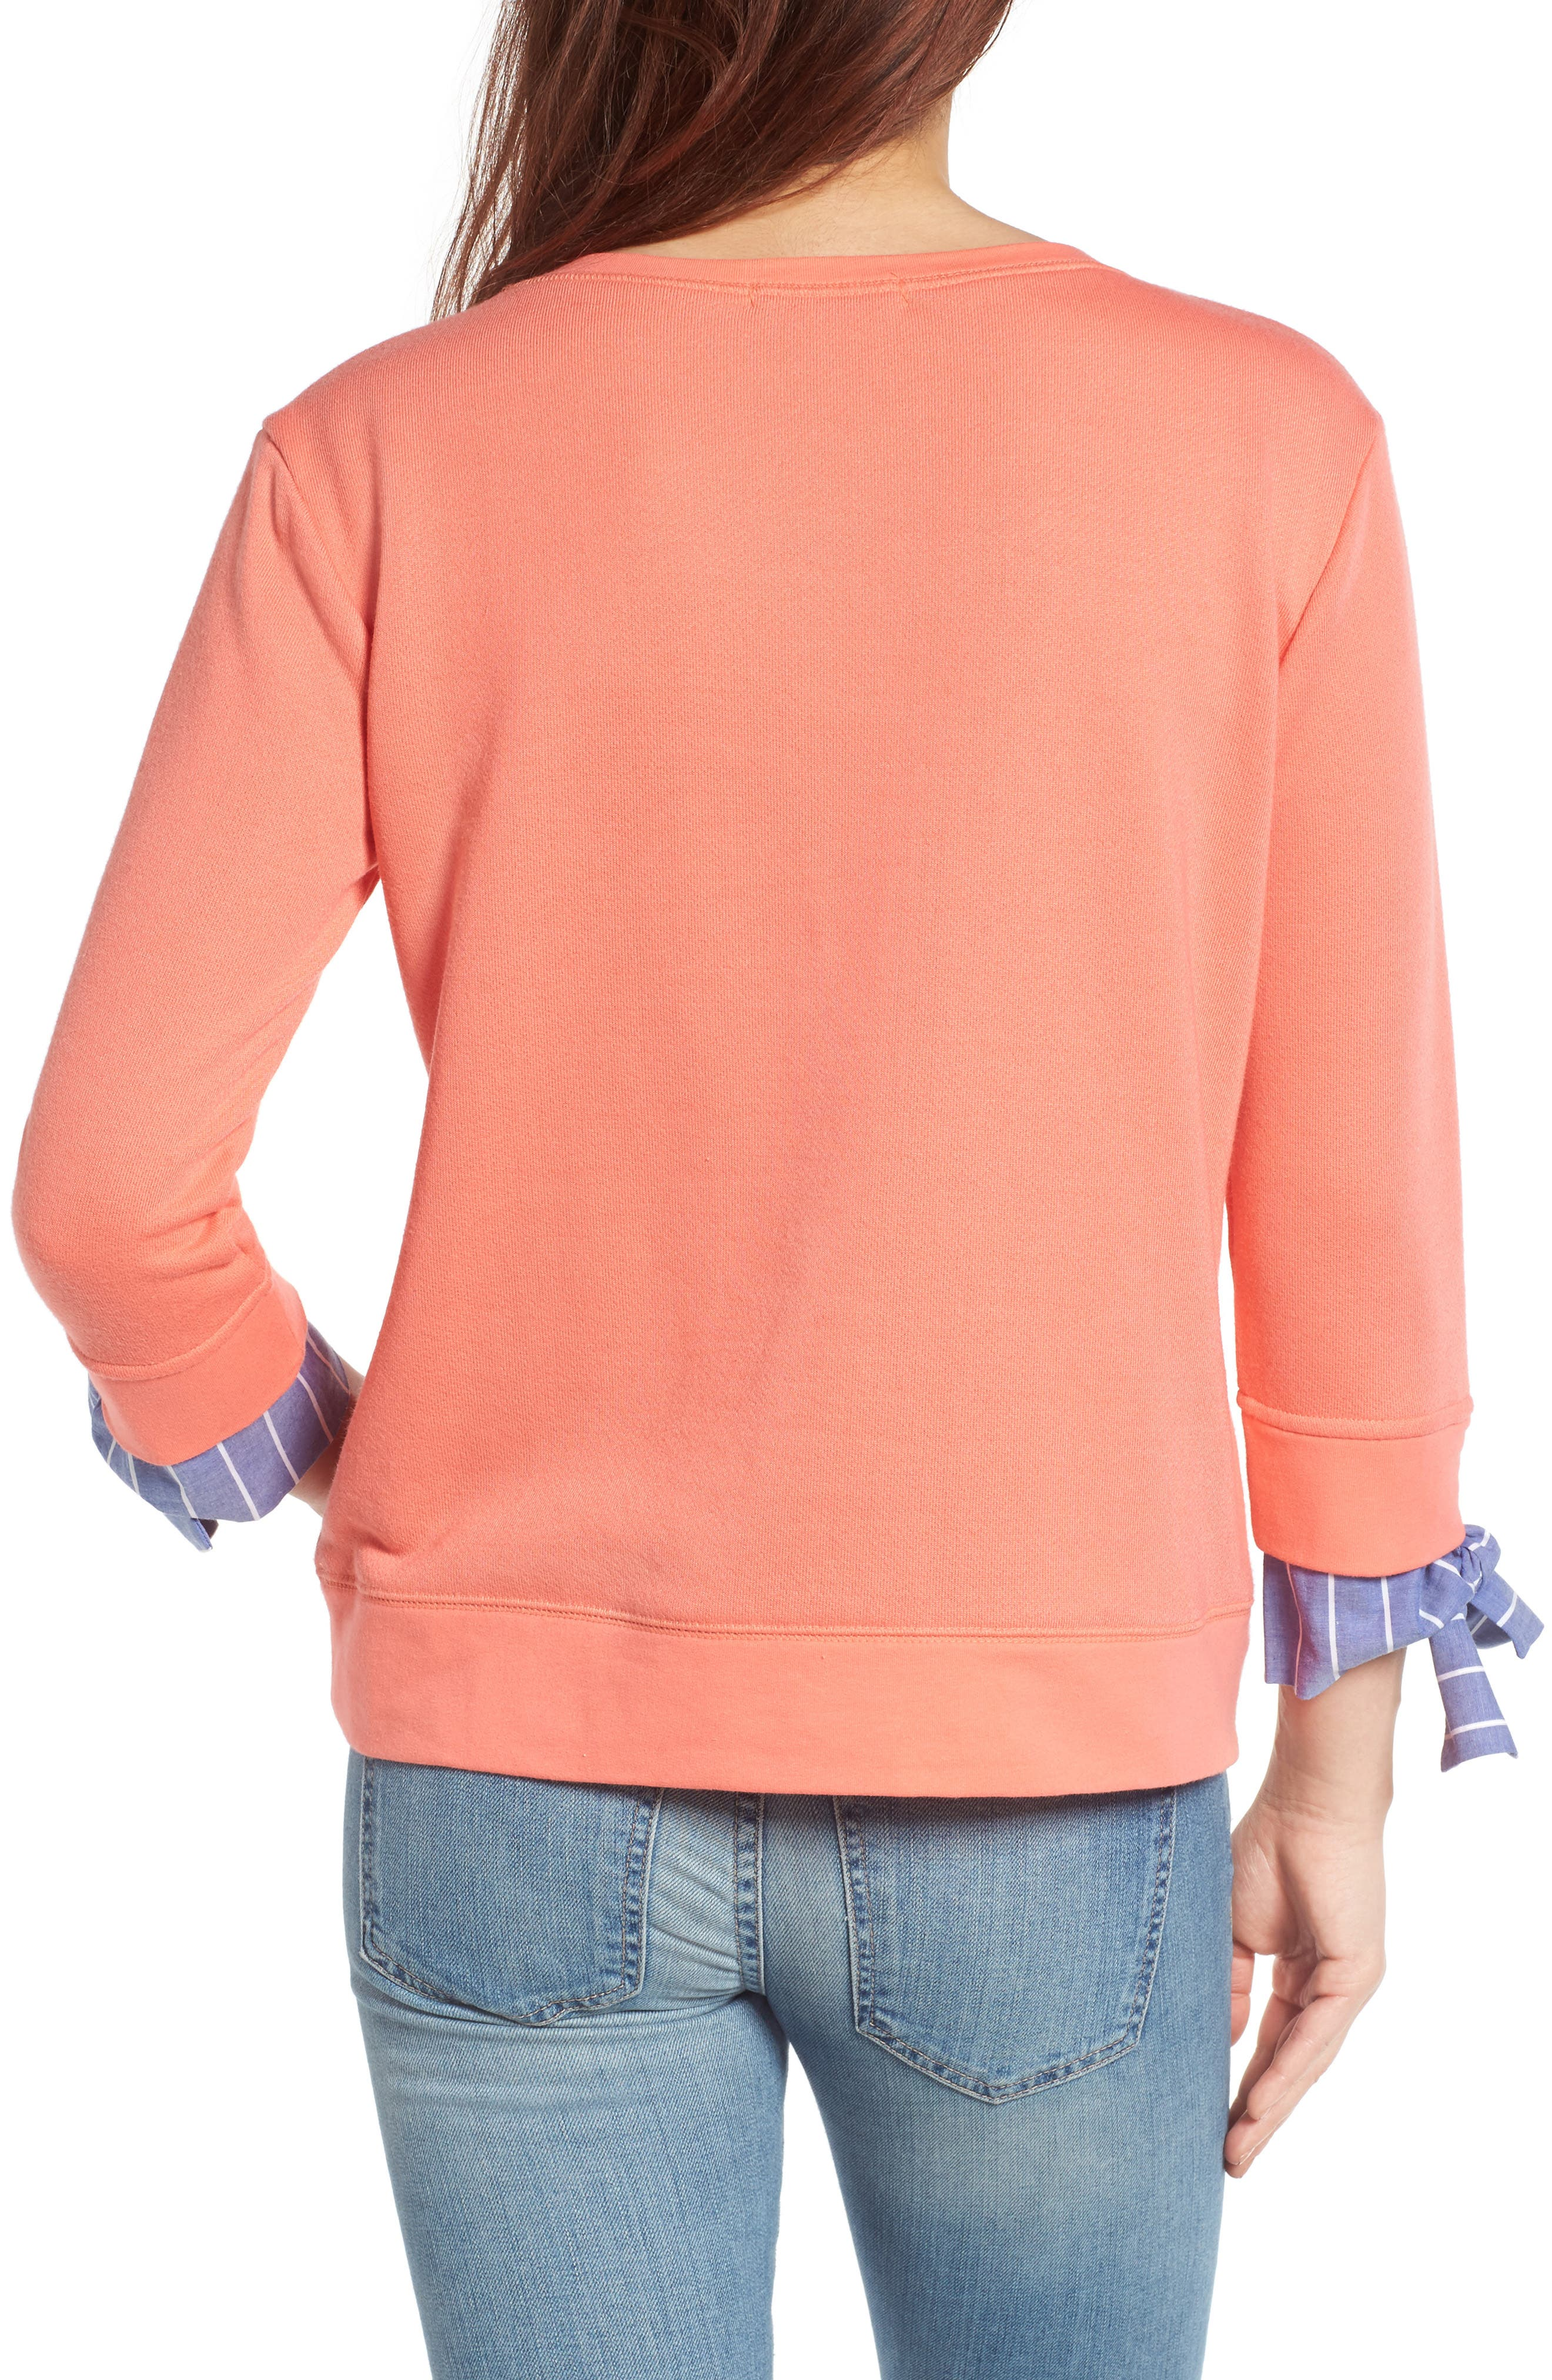 Alternate Image 2  - Gibson Tie Sleeve Sweatshirt (Regular & Petite)